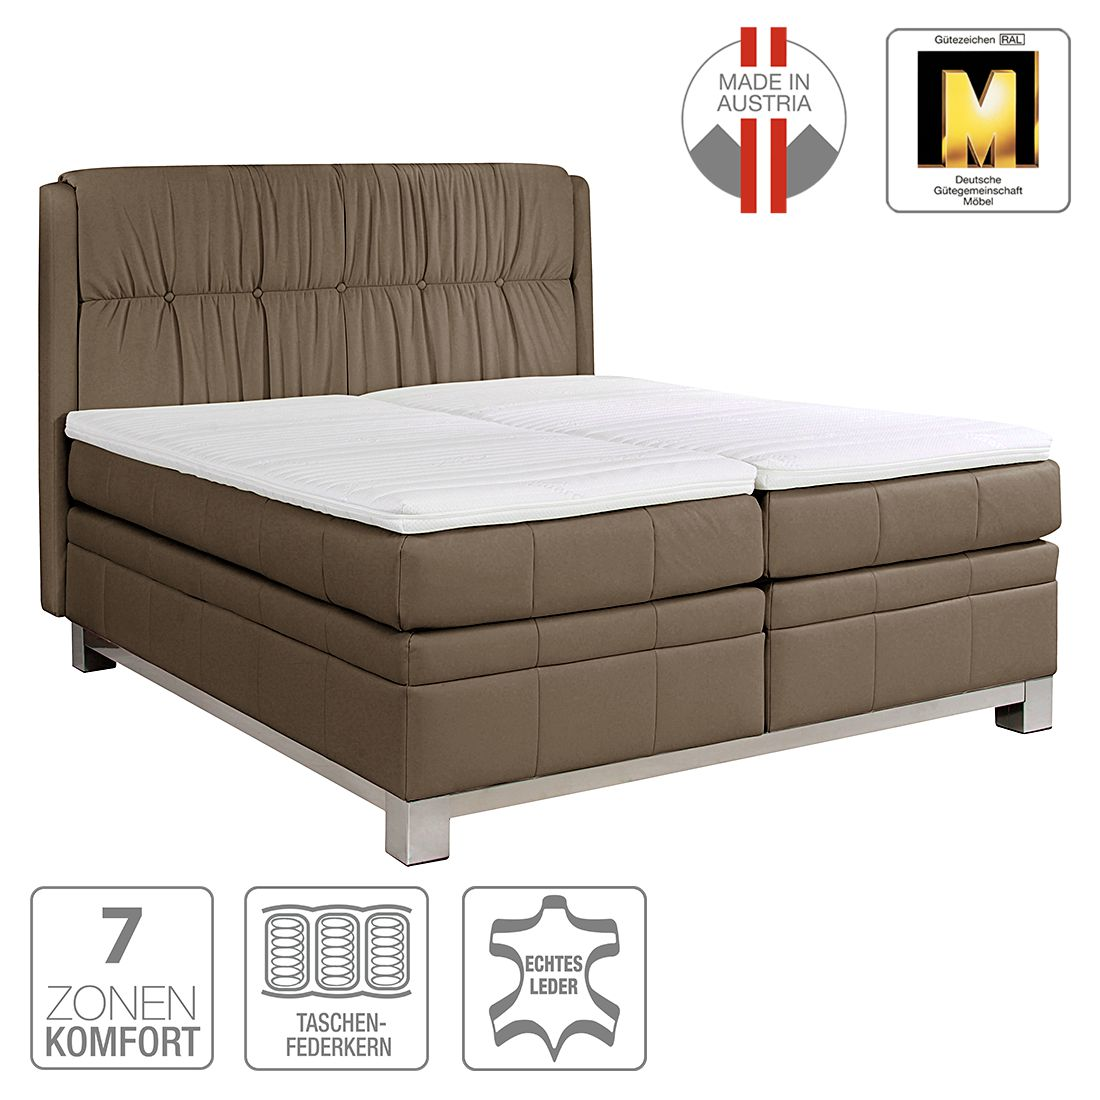 boxspringbett wolke7 ii echtleder 160 x 200cm h3 ab 80 kg braun ada premium g nstig. Black Bedroom Furniture Sets. Home Design Ideas